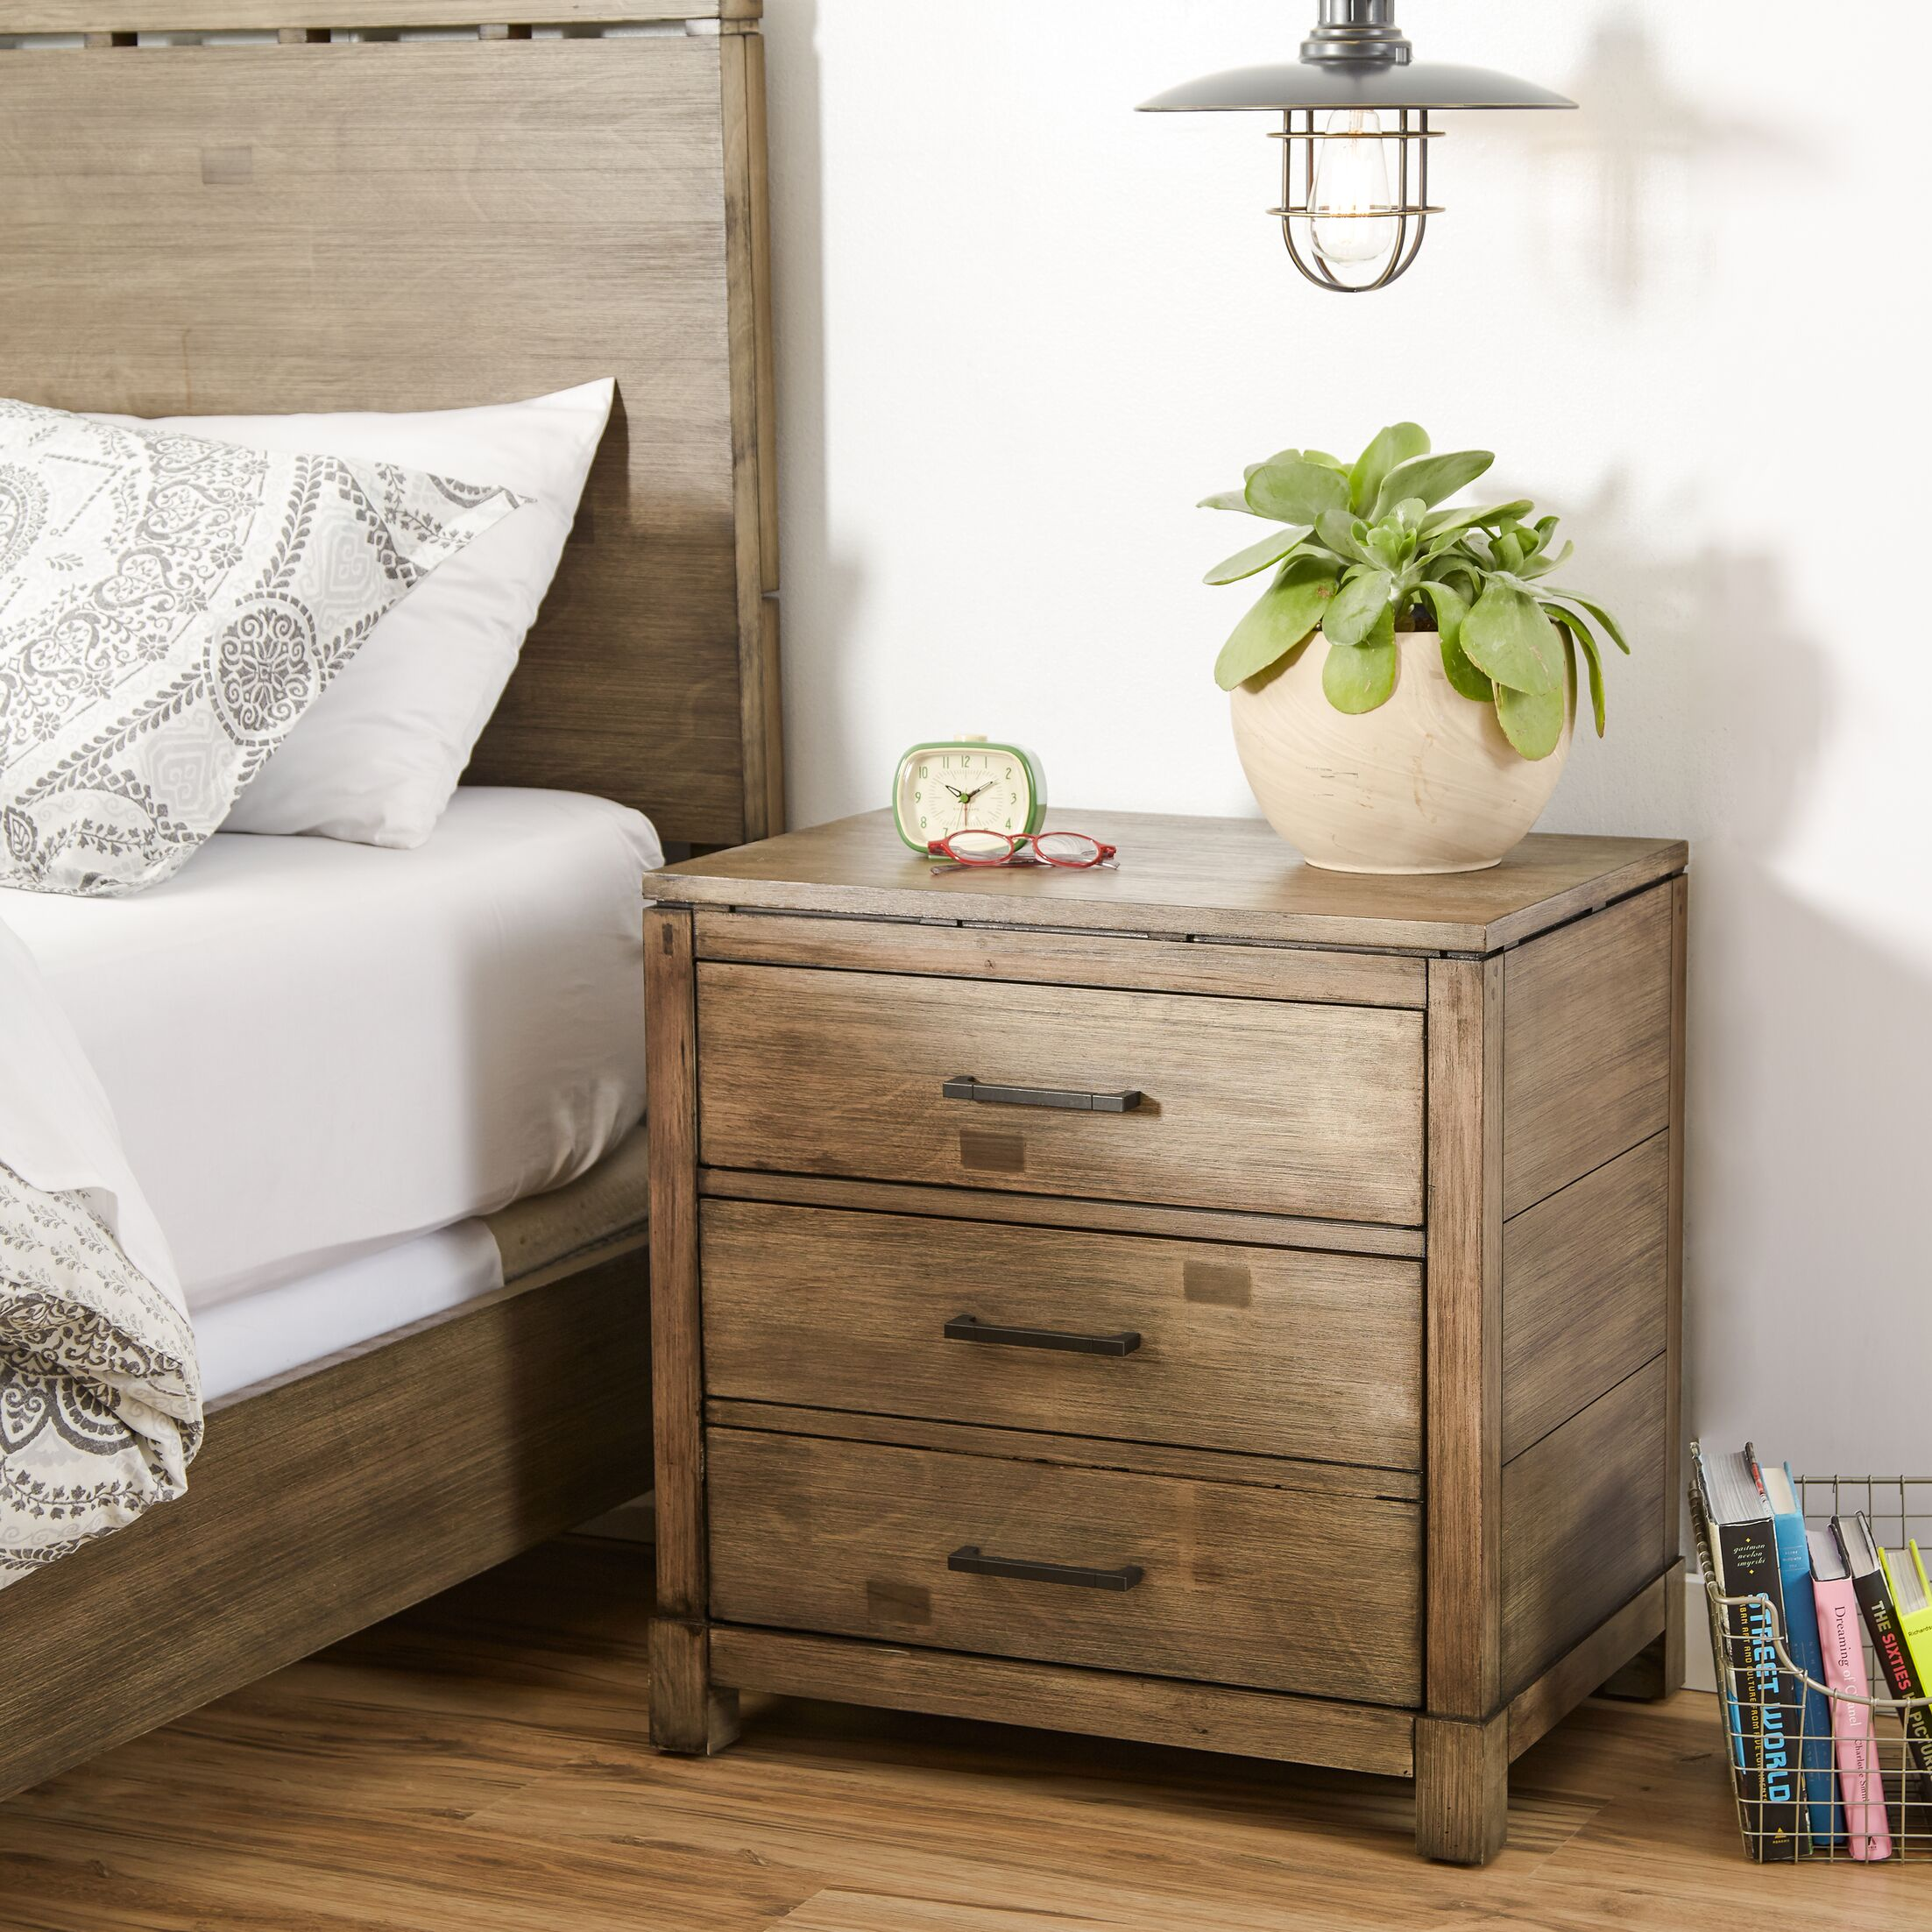 Seleukos 2 Drawer Nightstand